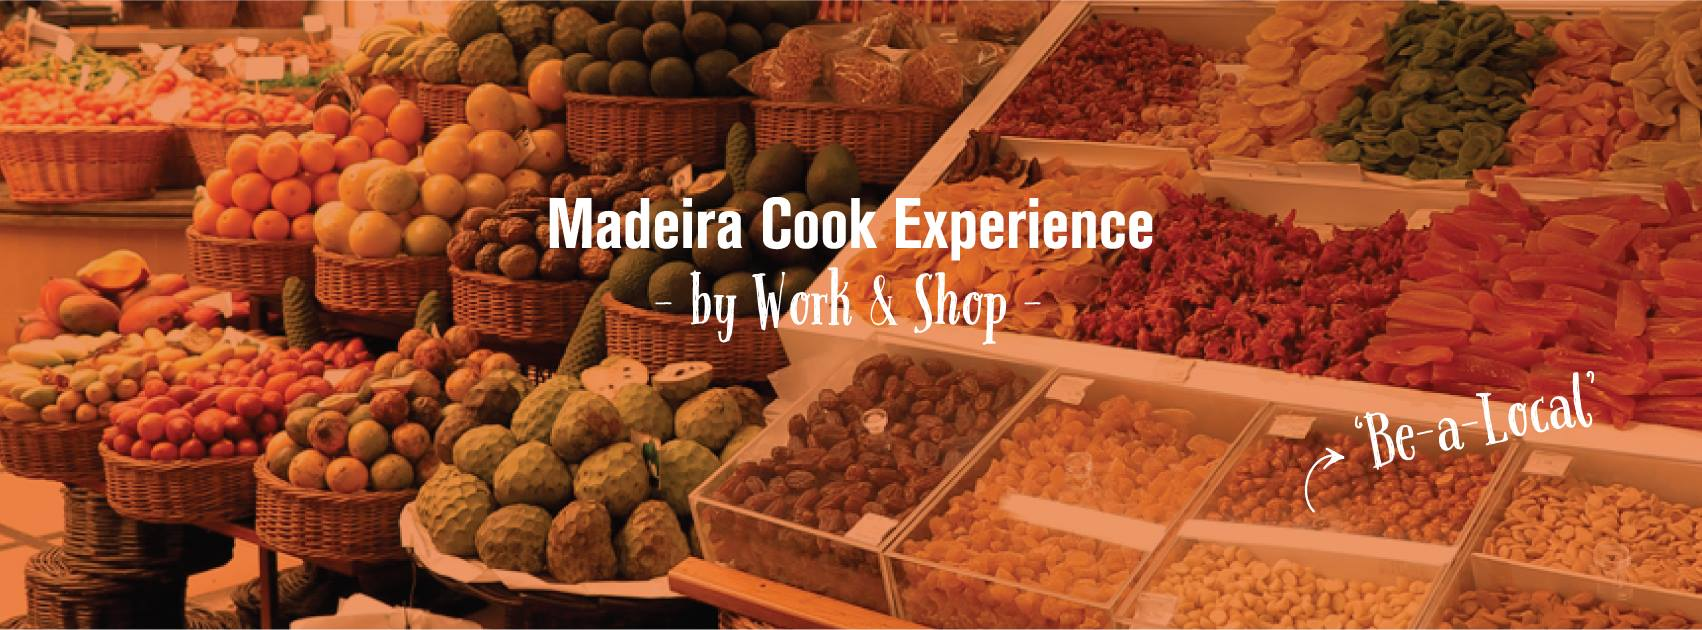 Madeira Cook Experience